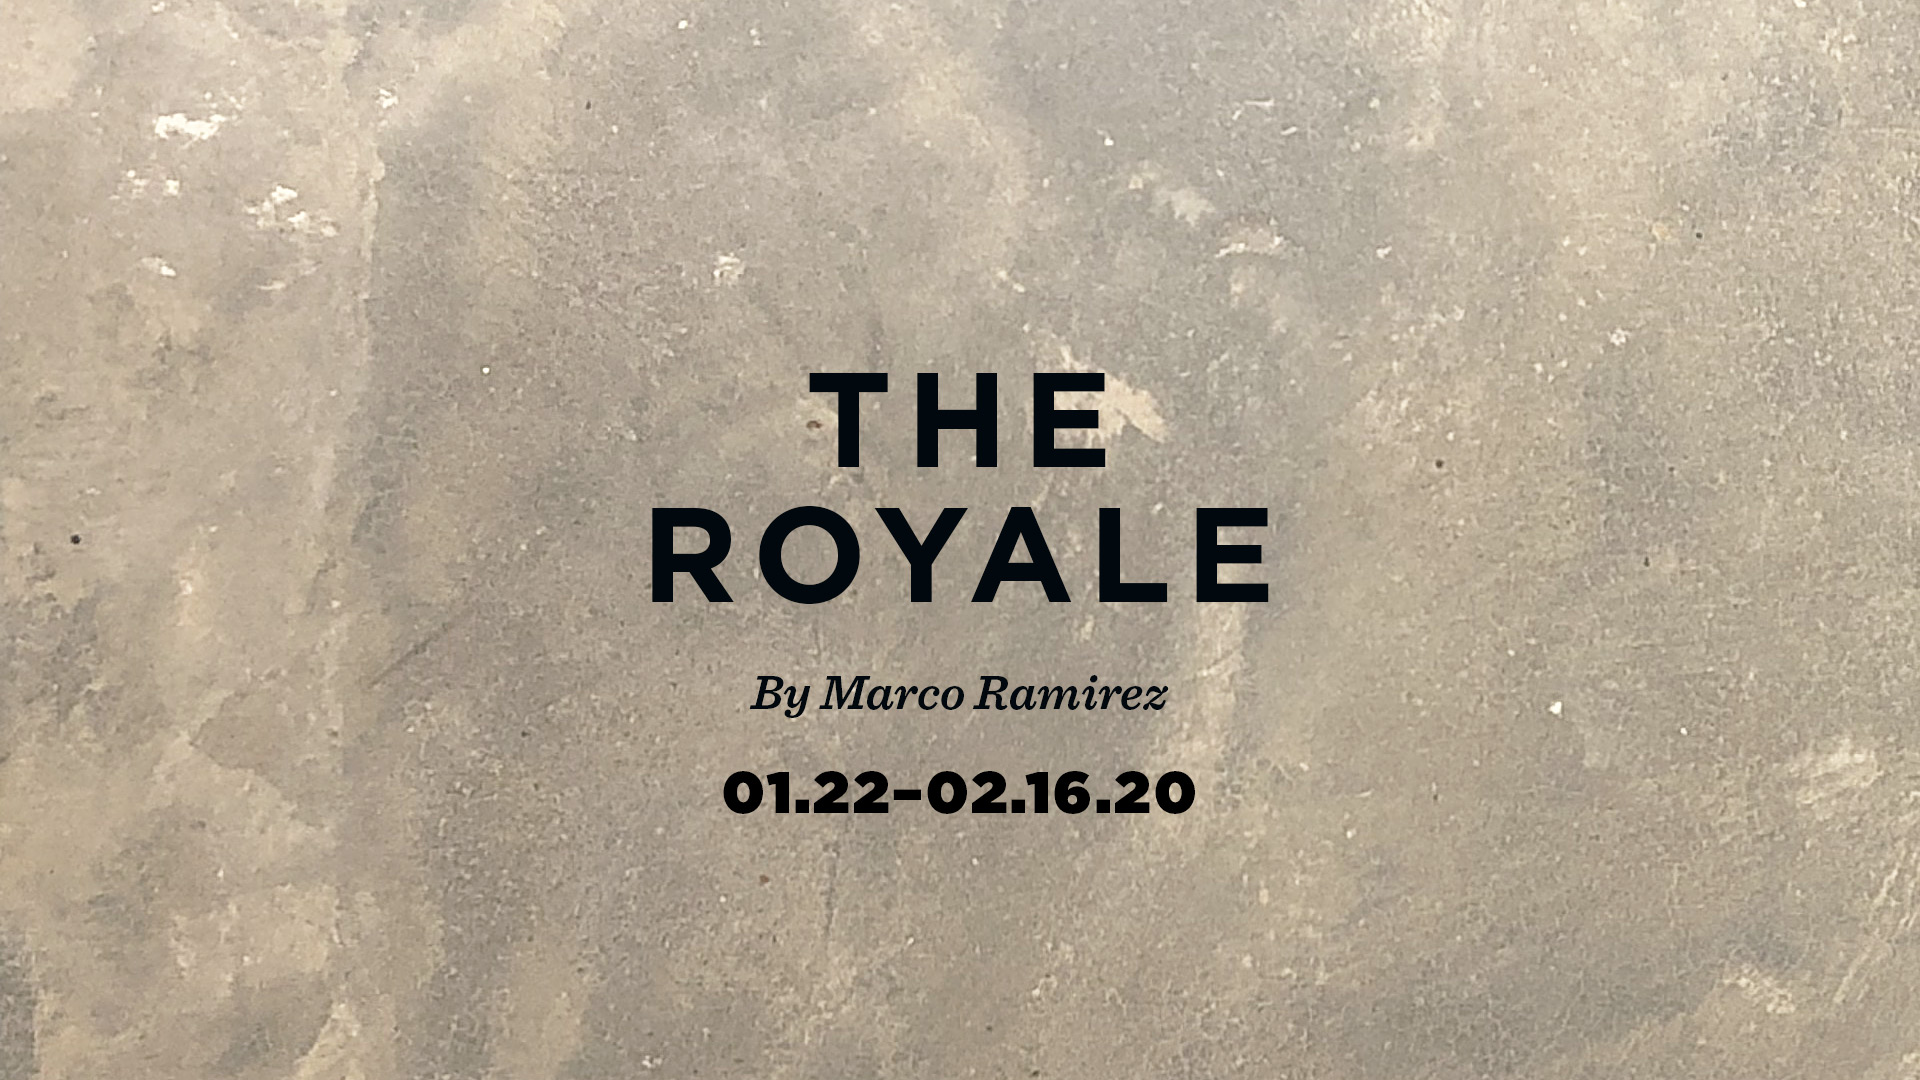 Show-Website-Page-Header-The-Royale-1920x1080.jpg